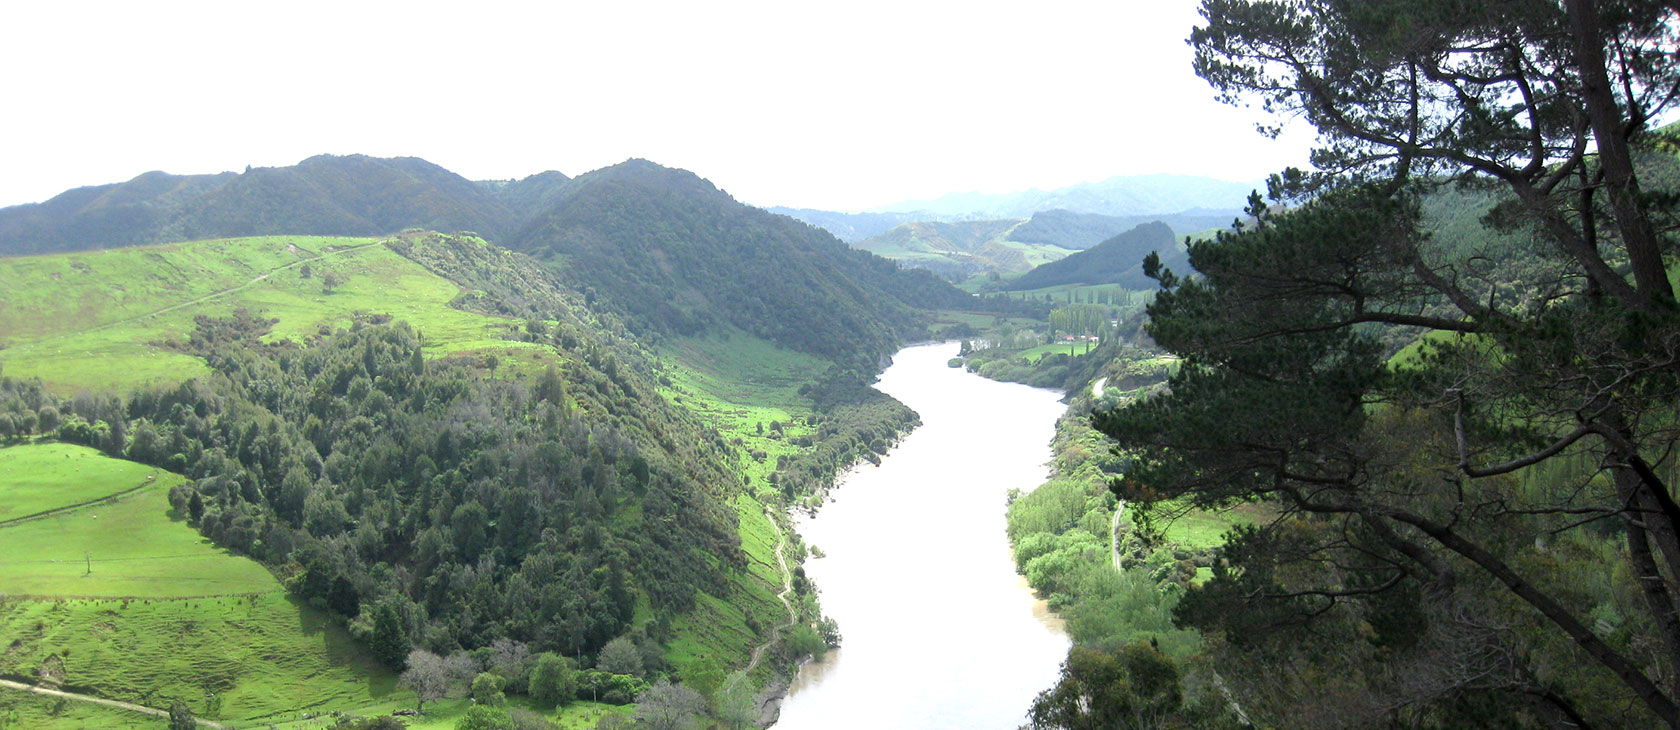 Looking down the verdant Whanganui River in New Zealand